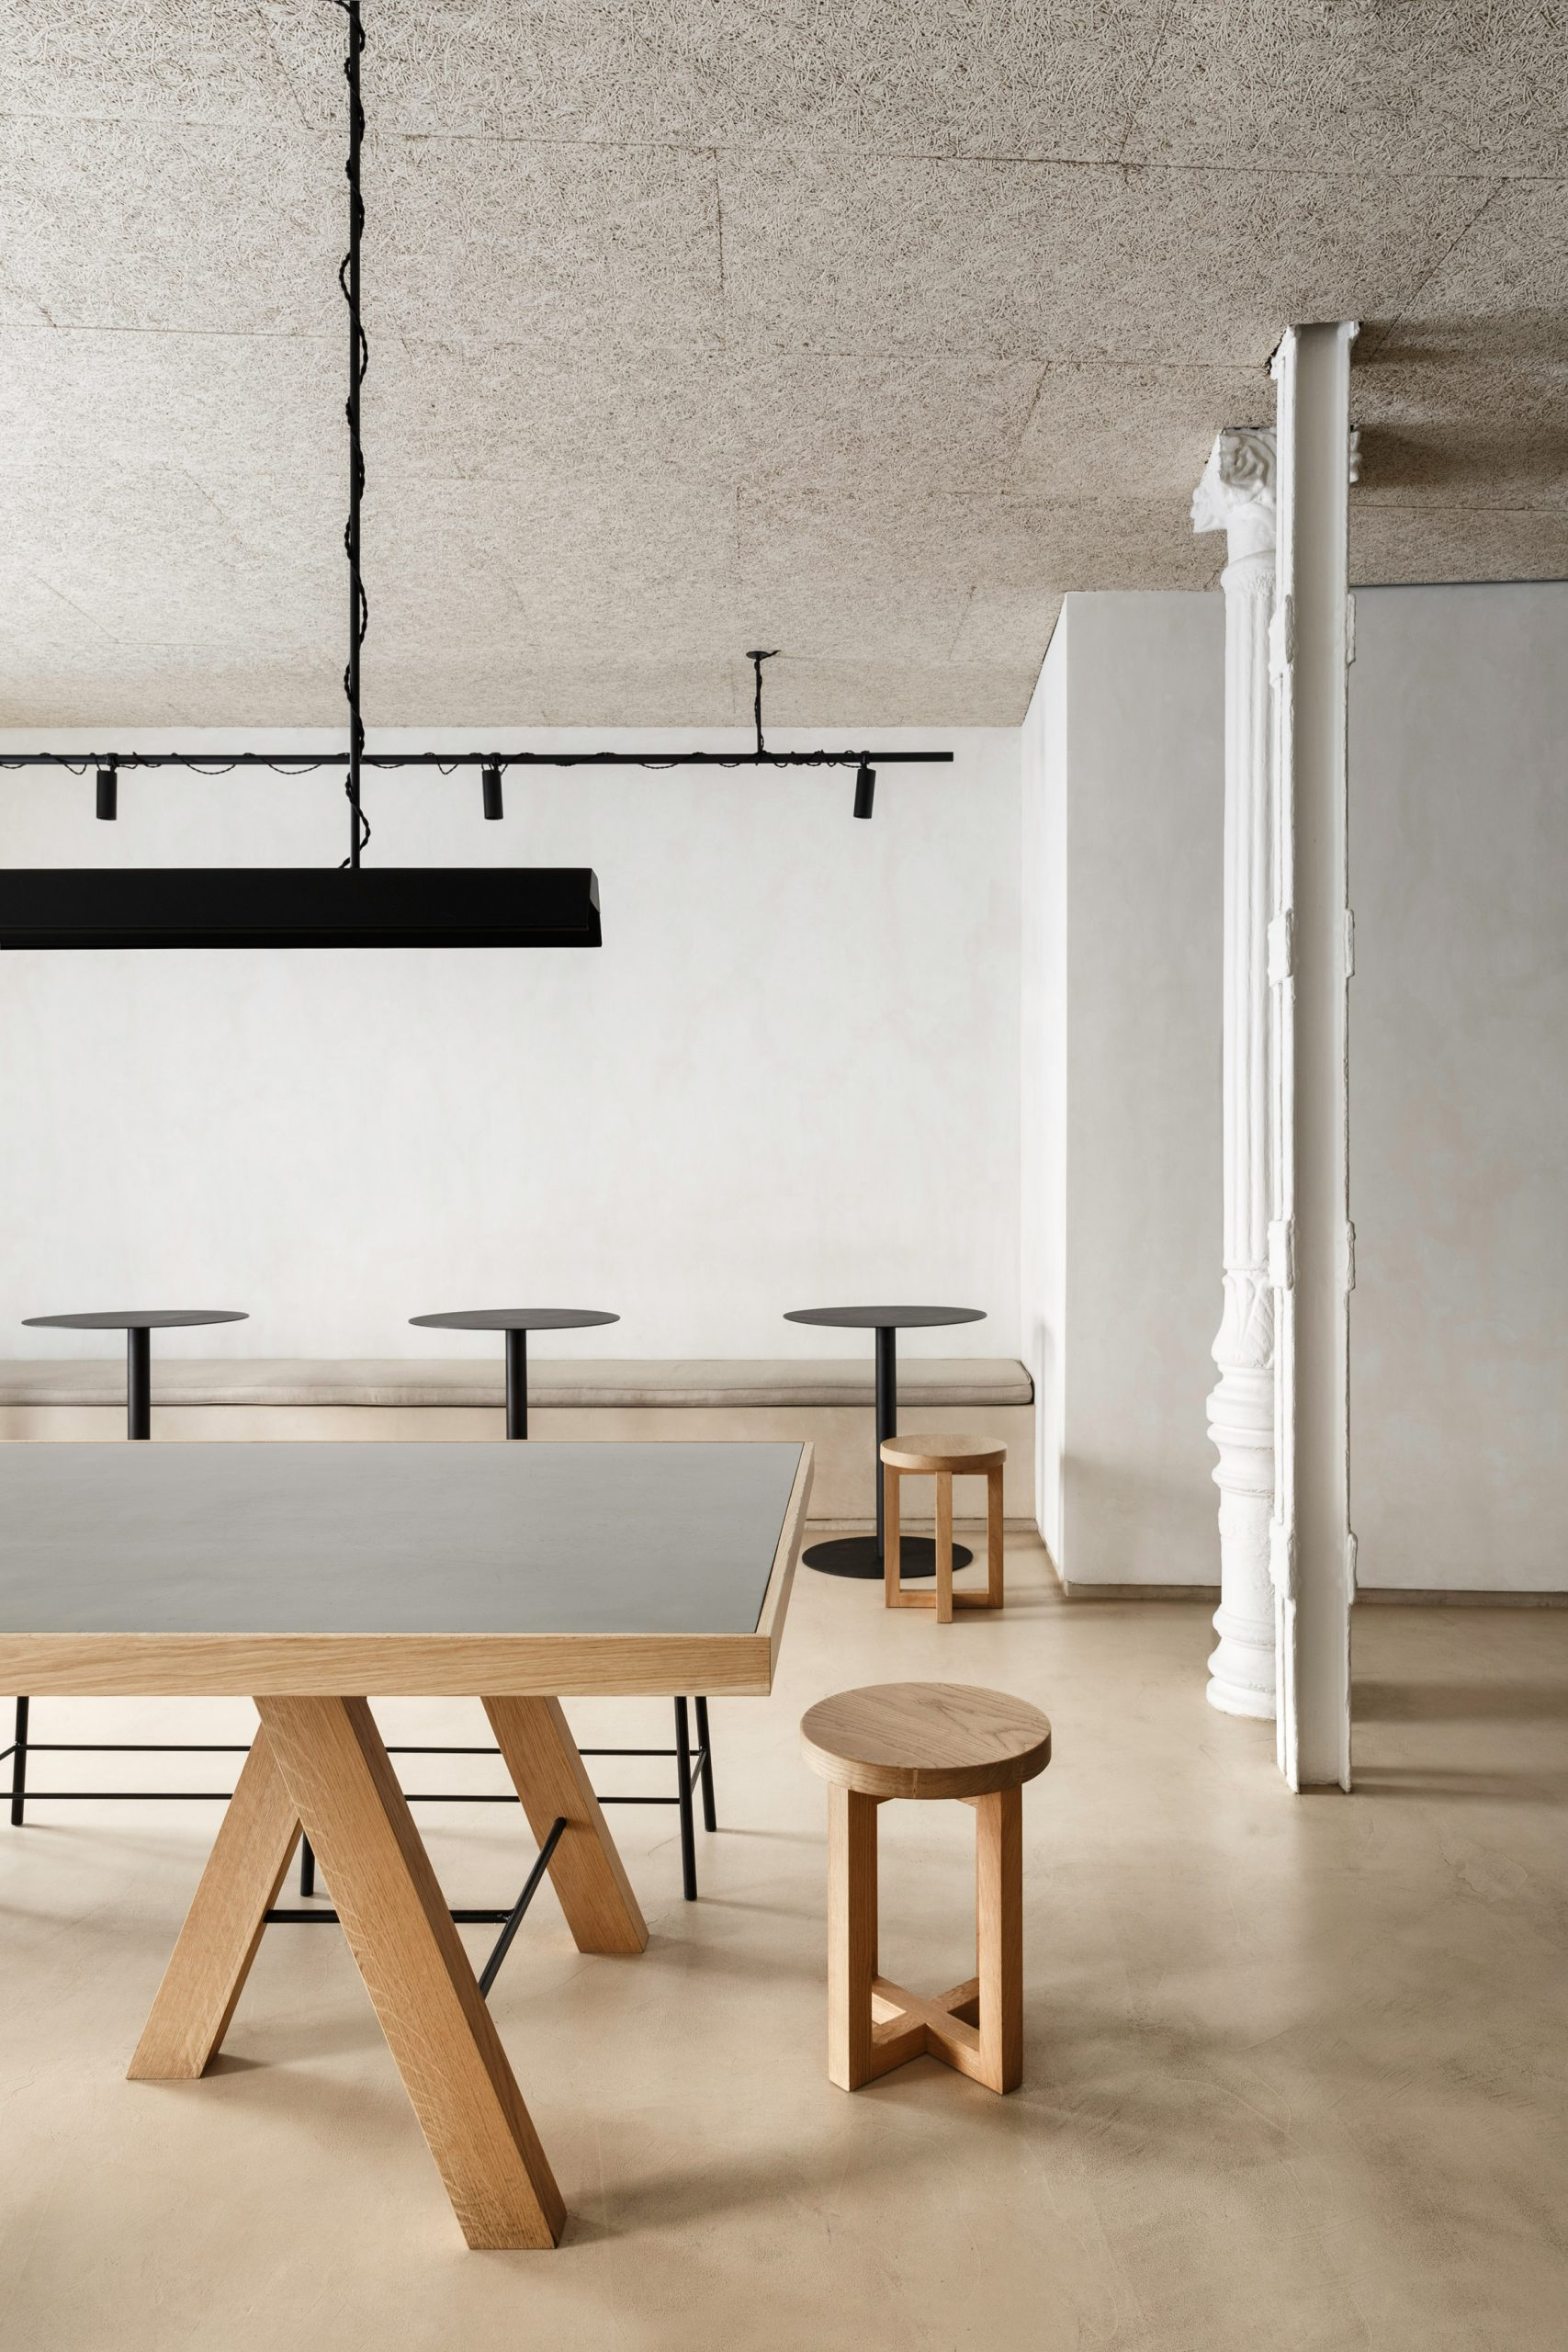 Informal dining area of Zuppa restaurant by Plantea Estudio with wood and steel table